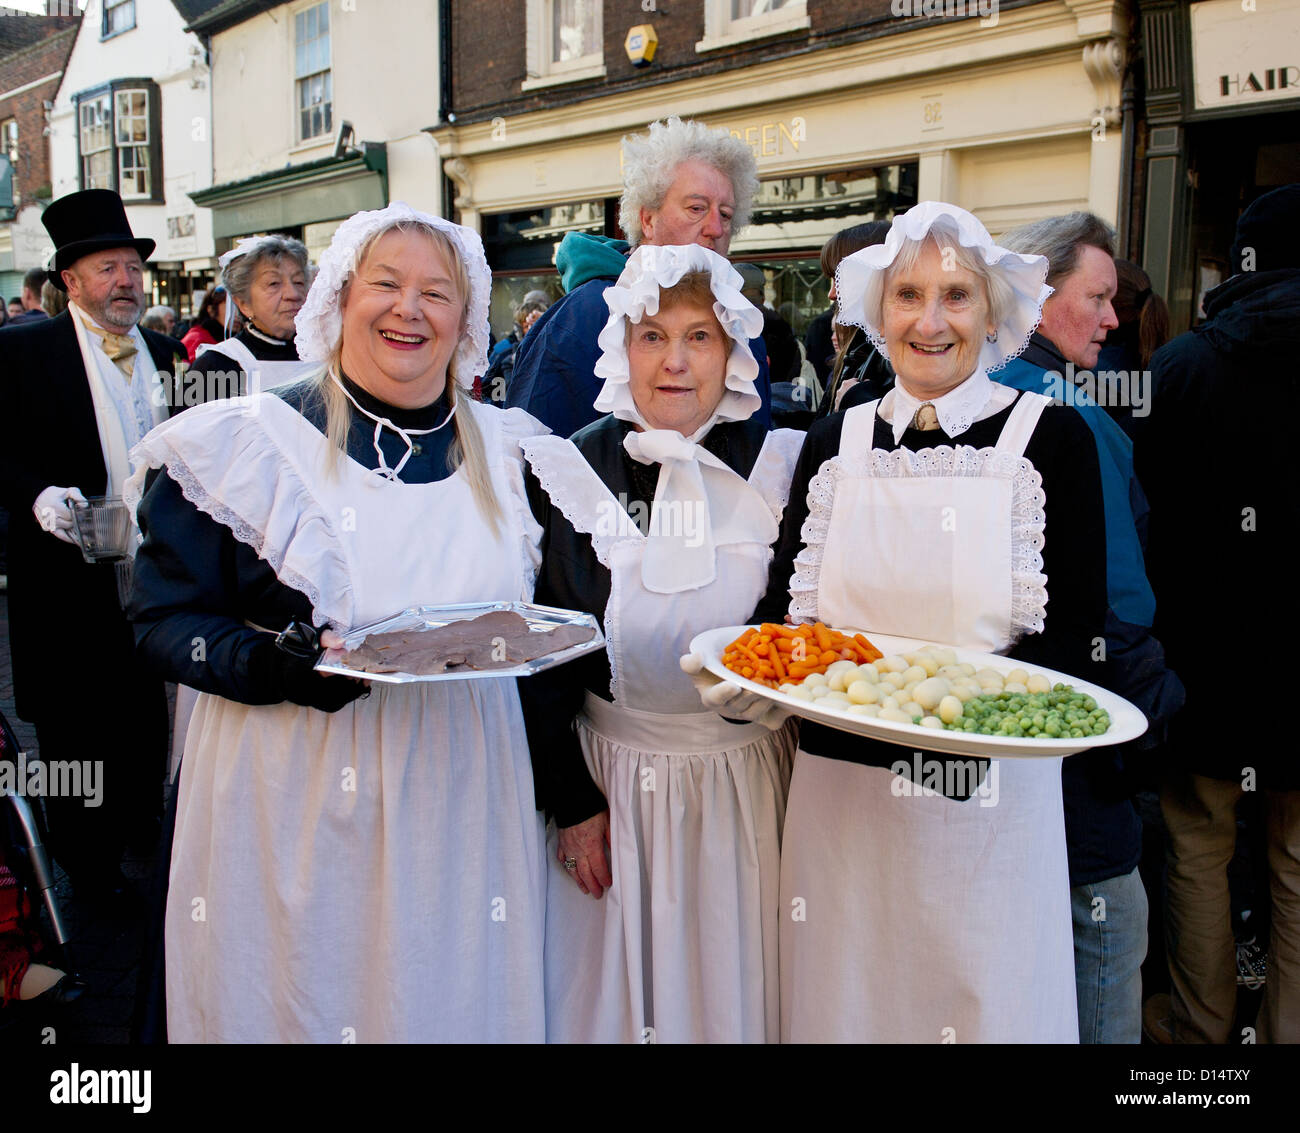 Characters at the Dickens Christmas Festival in Rochester. - Stock Image